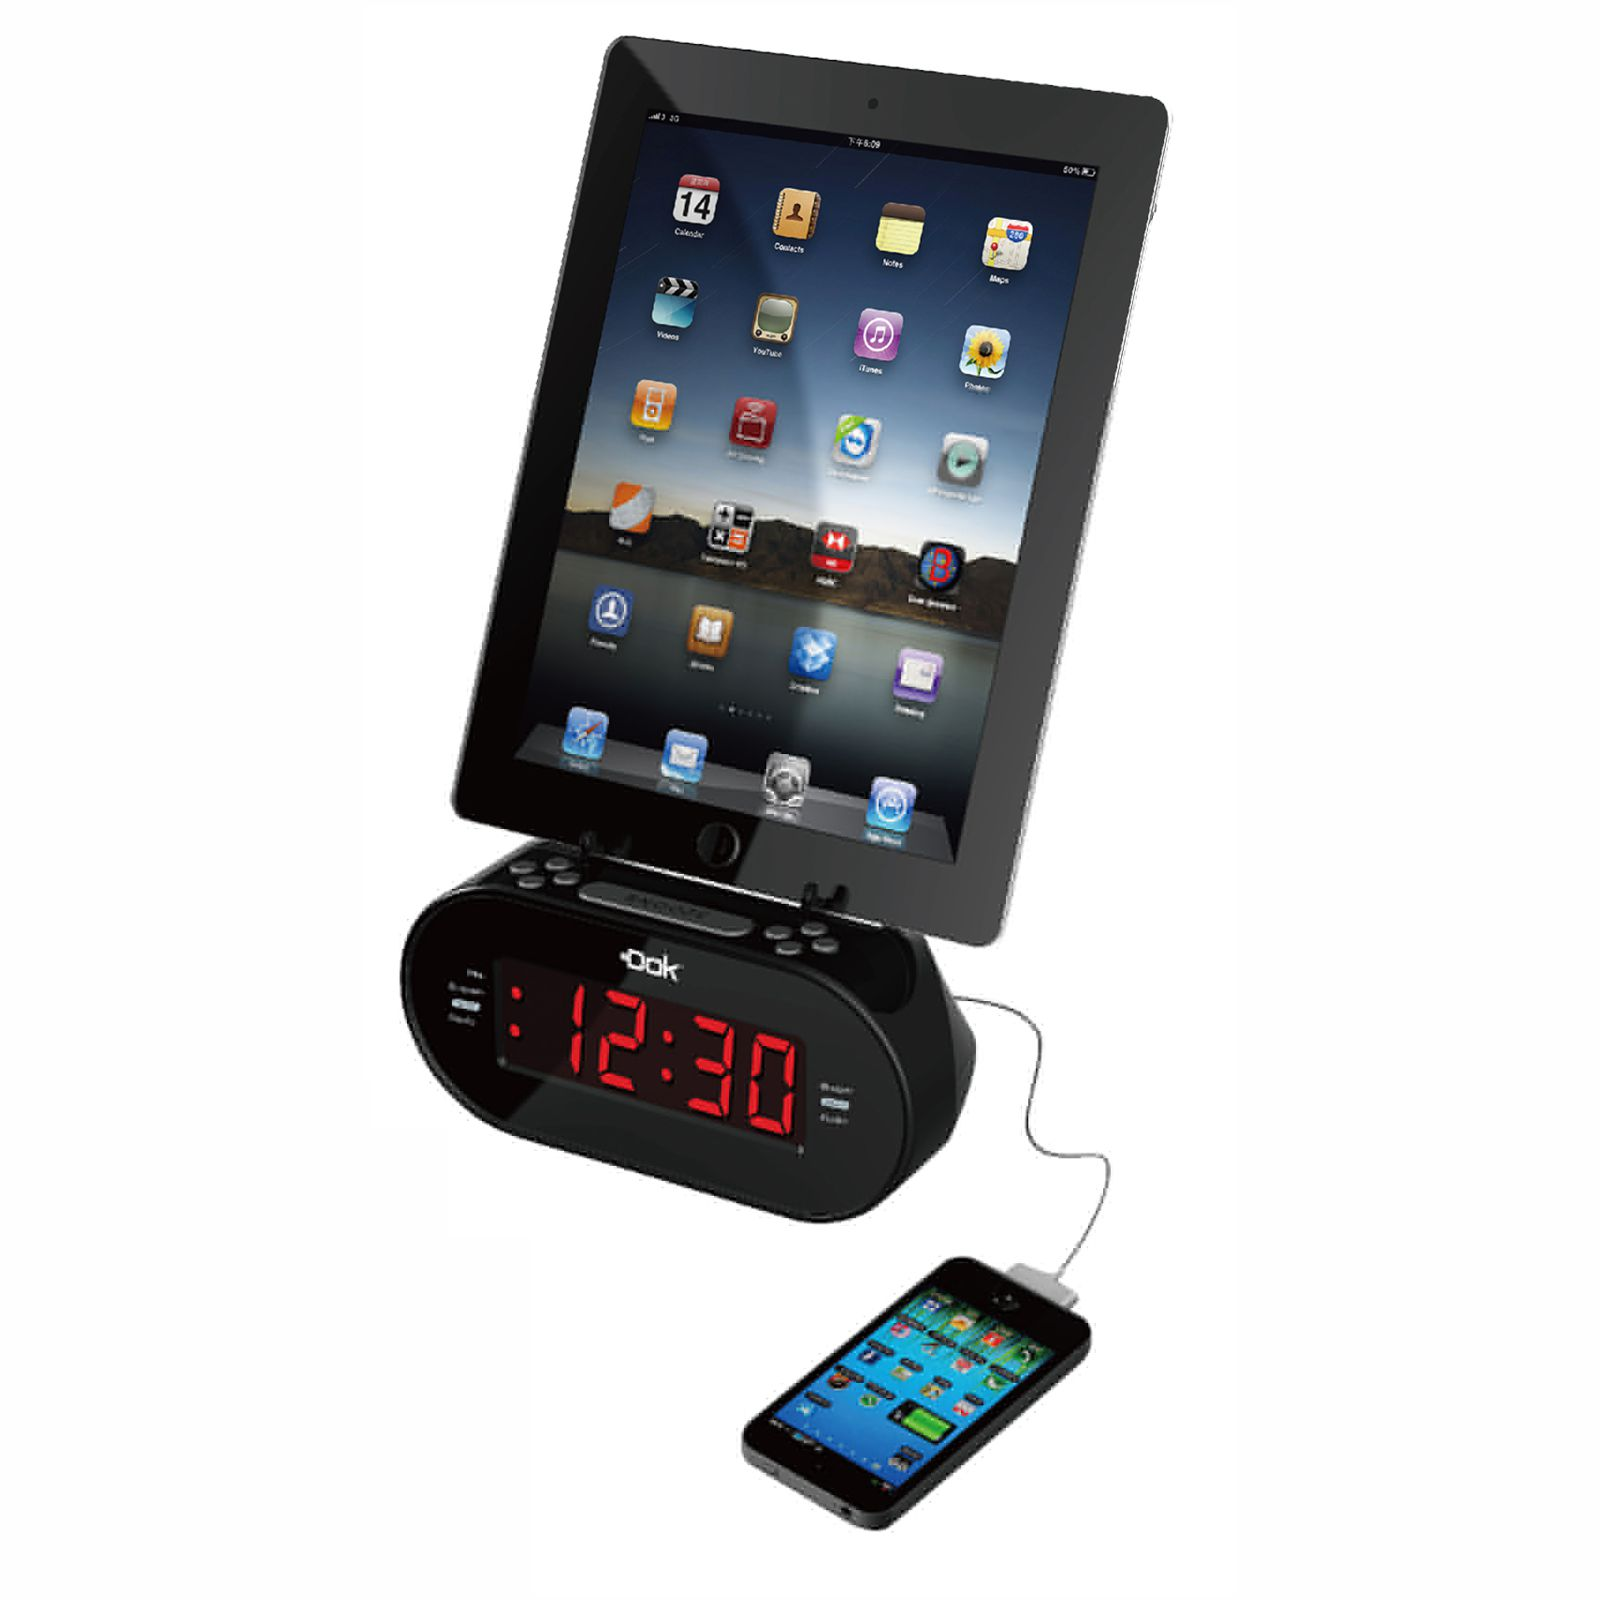 CR09 - Universal Dual Charger with Alarm Clock And Cradle